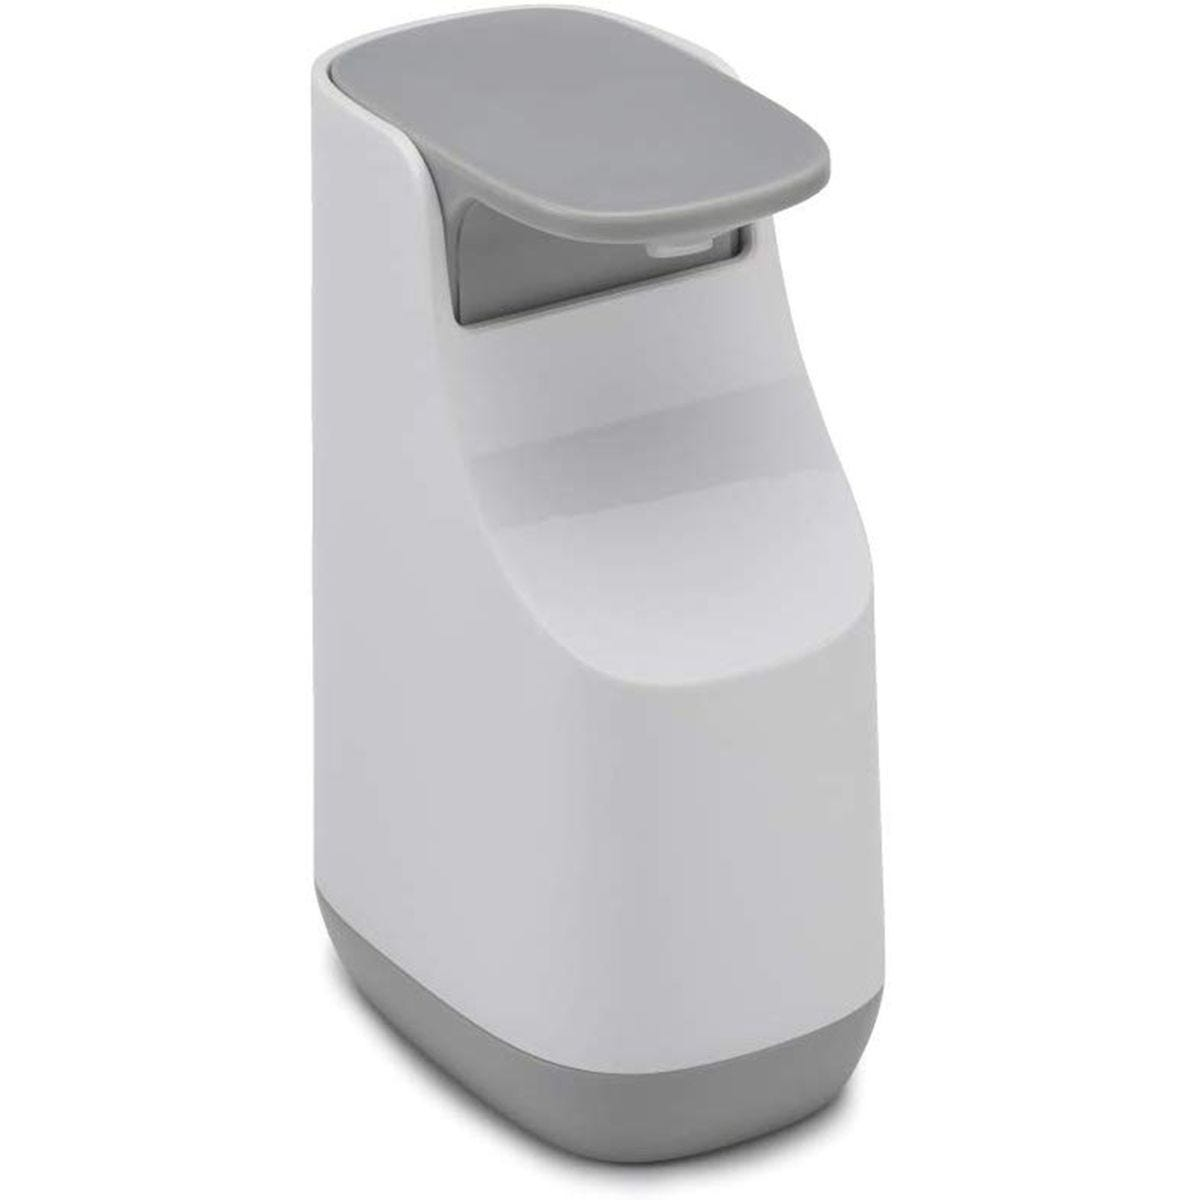 Joseph Joseph Slim Compact Soap Dispenser - Grey/White